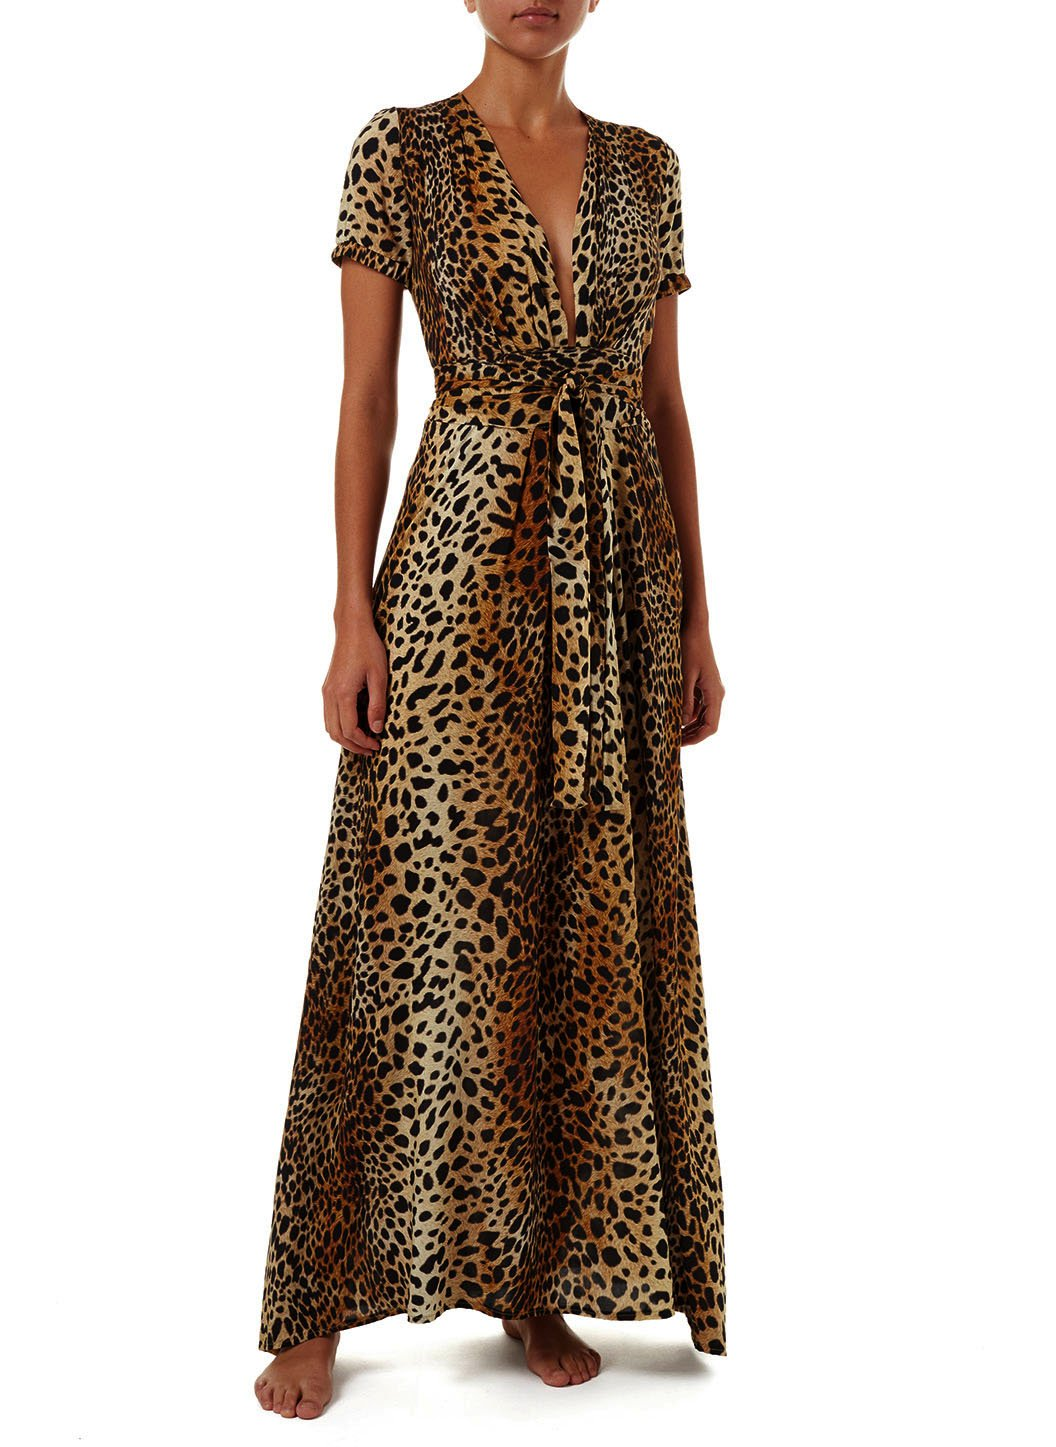 lou cheetah vneck belted maxi dress 2019 F